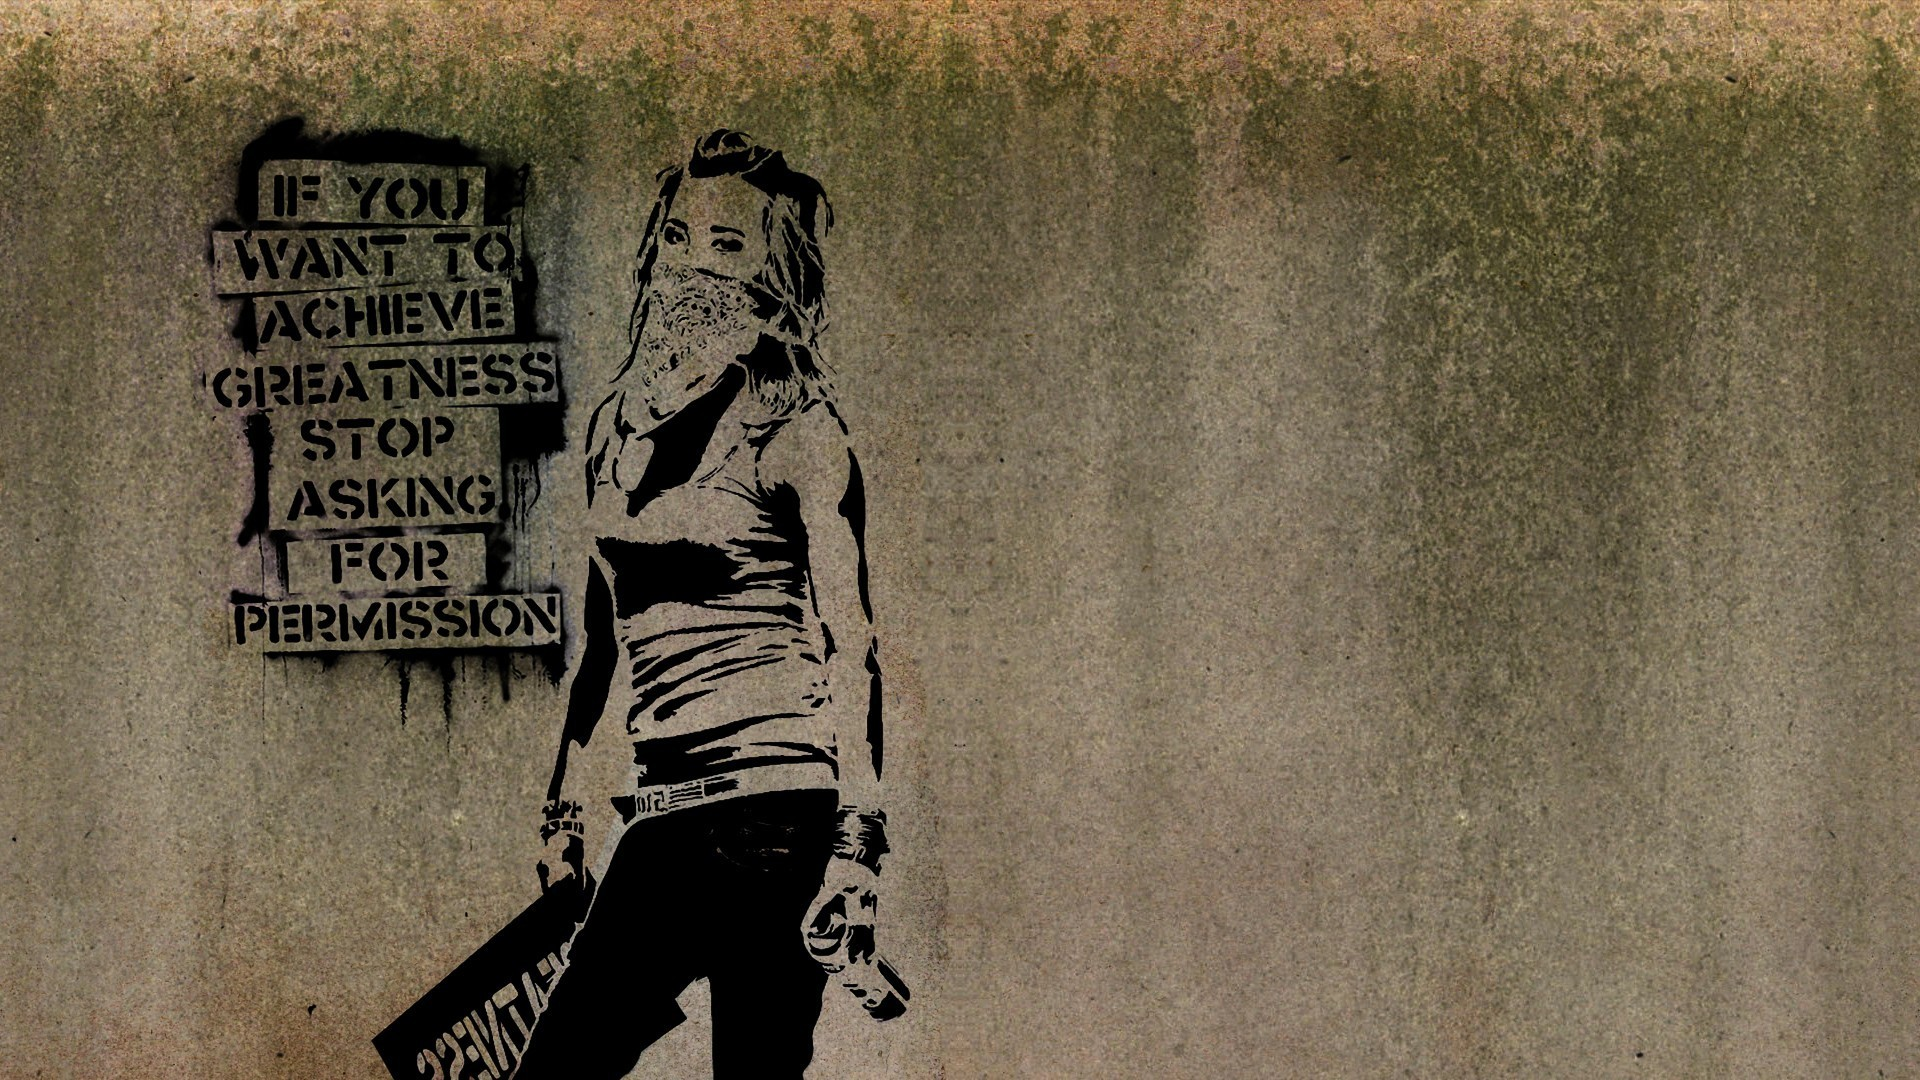 graffiti, Women, Banksy, Artwork, Text, Quote, Minimalism, Inspirational,